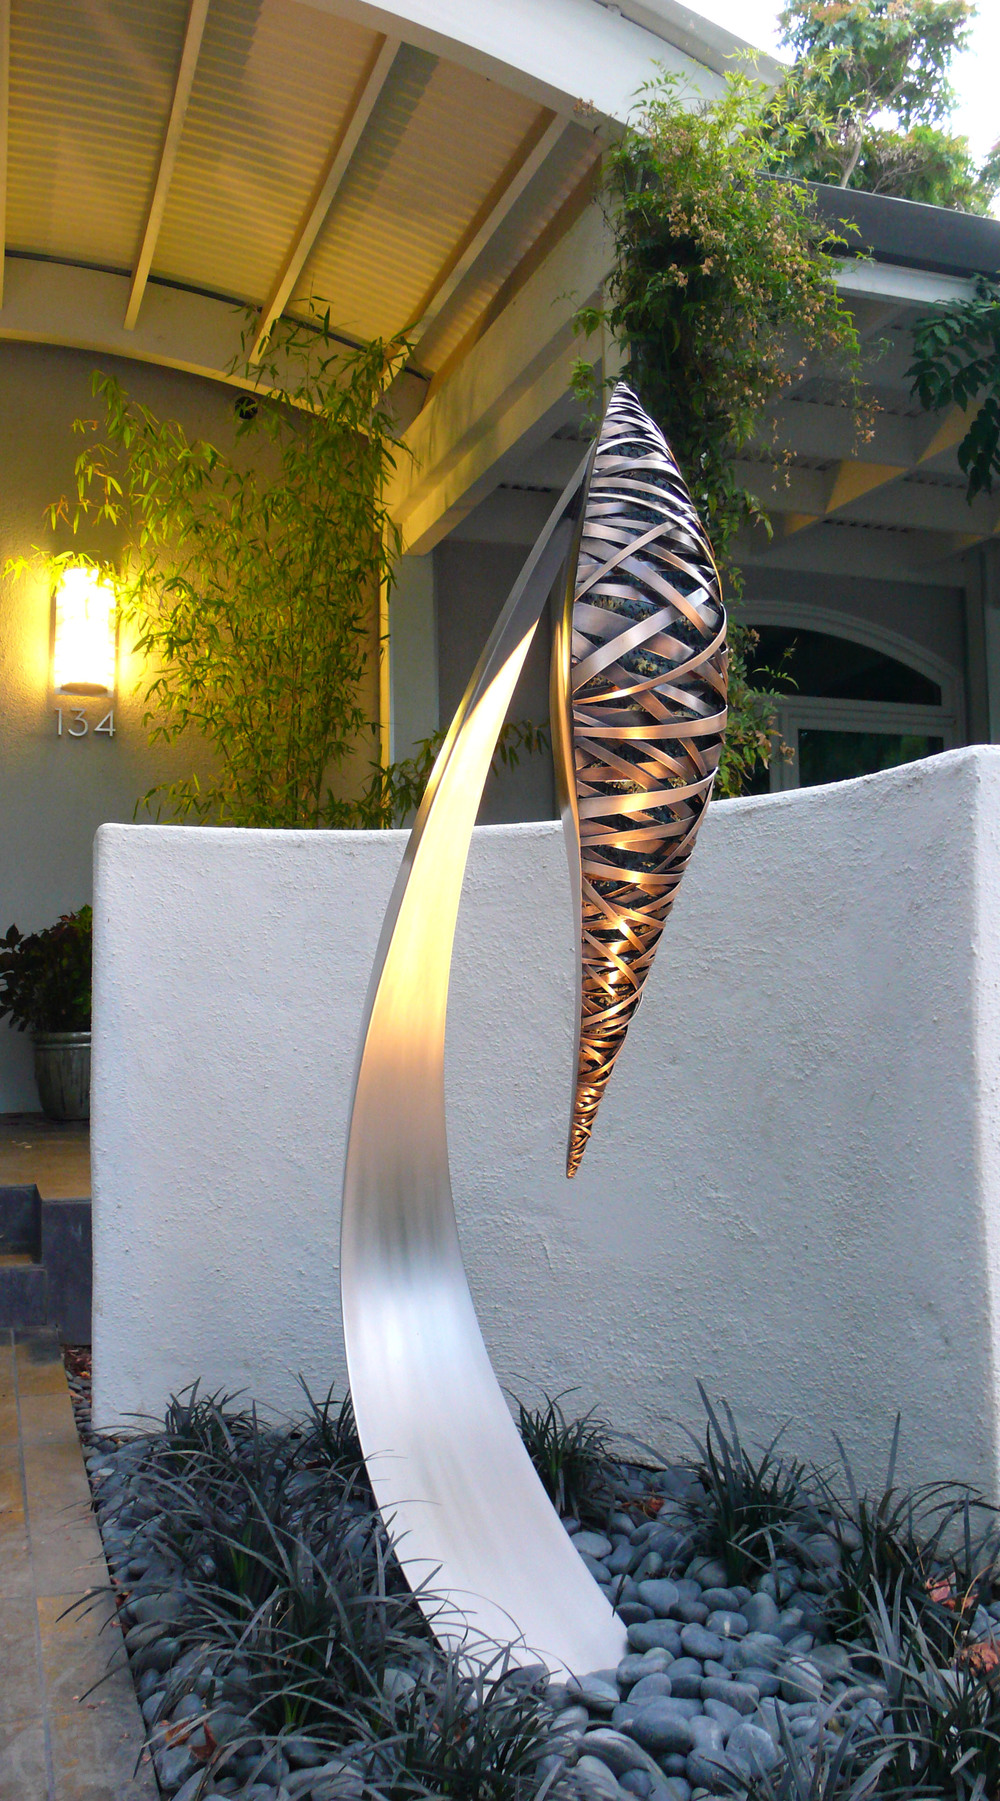 Innocentinals , Bronze & Stainless Steel, 5' x 3' x 1' (each), 2009,Private Residence, Palo Alto, CA